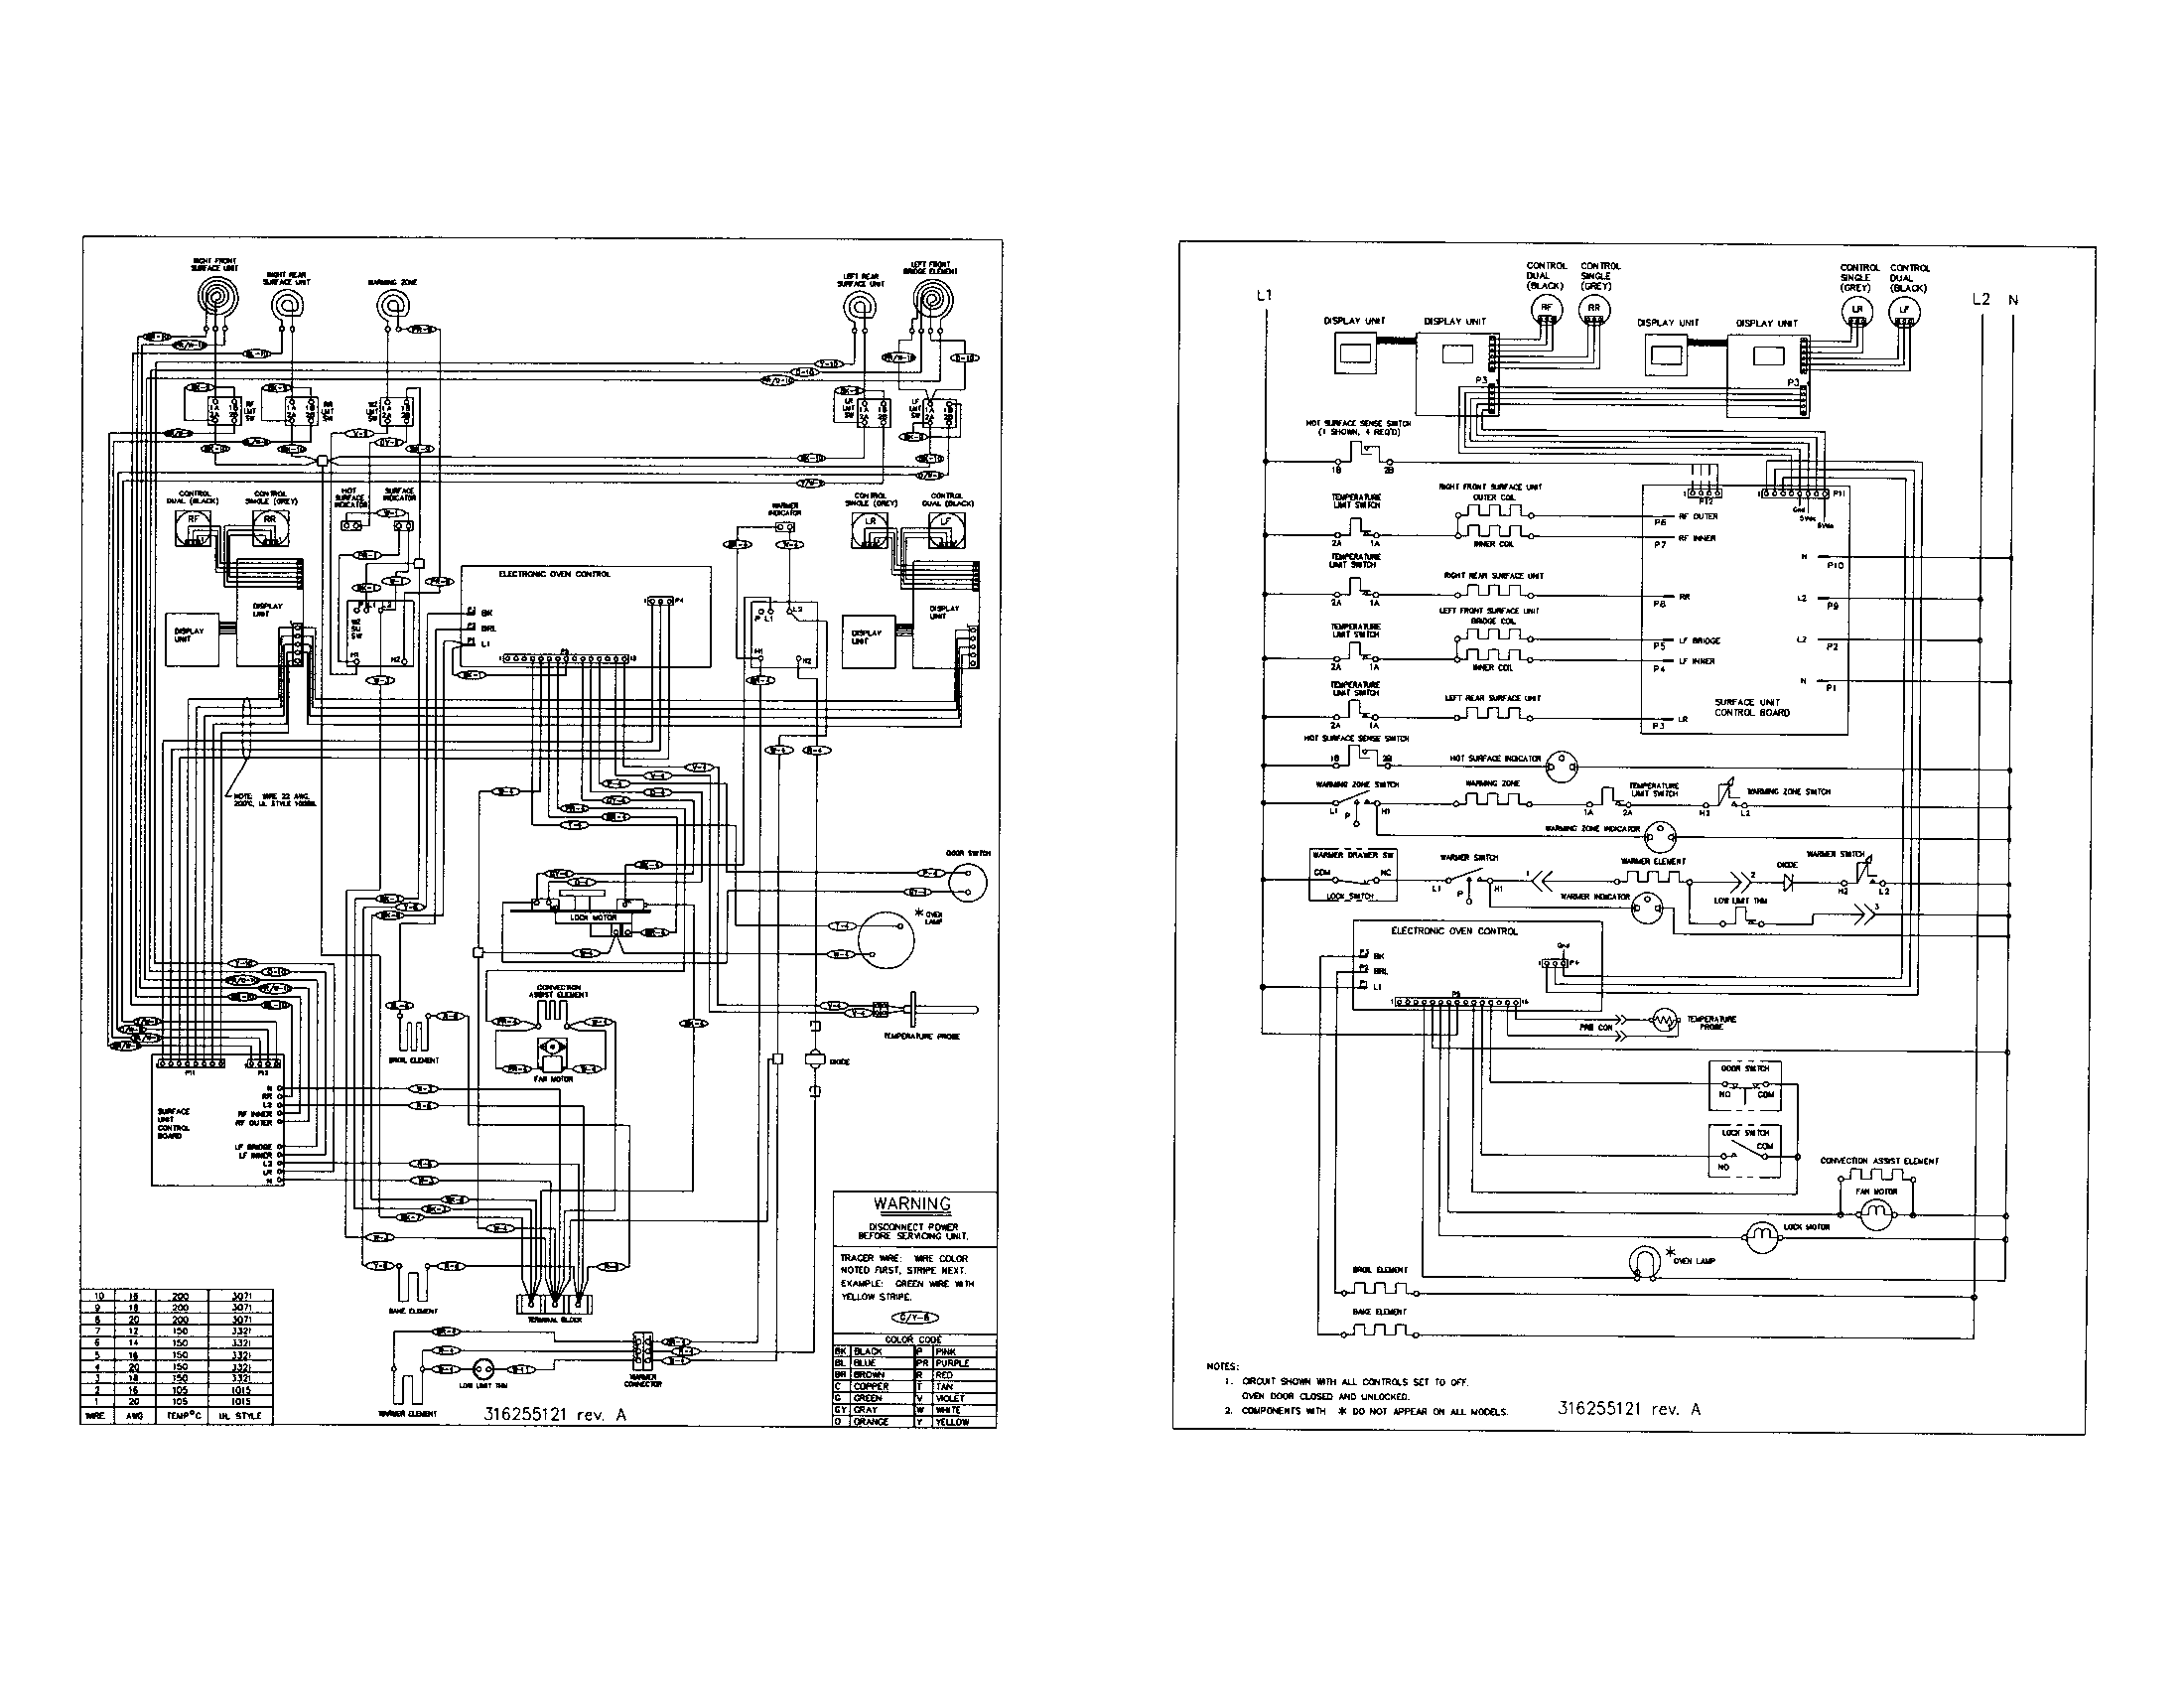 Ground Fault Electrical Service Panel Schematic